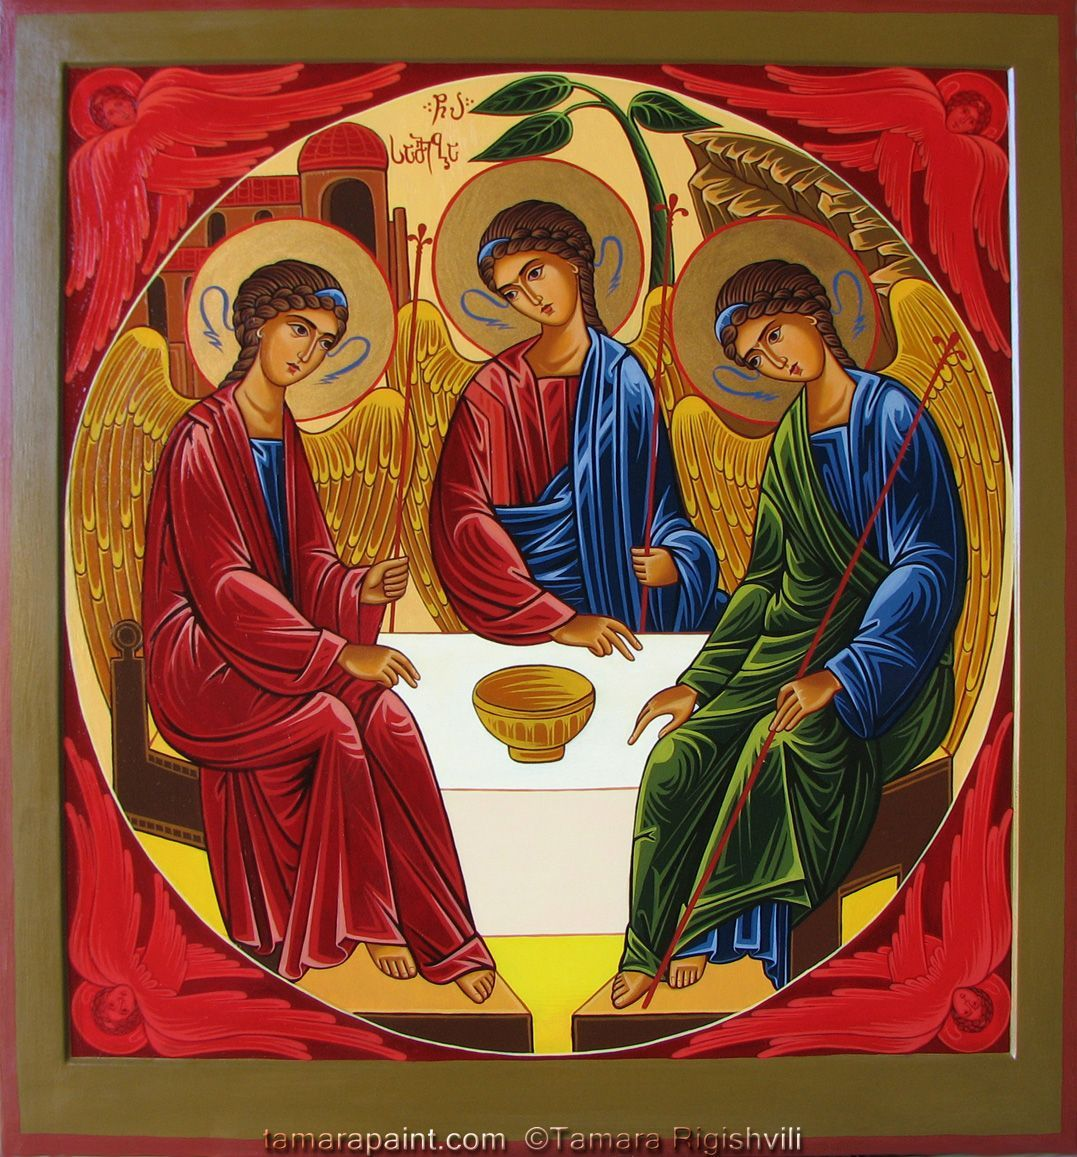 holy trinity christian singles The church teaches that the holy trinity is the central mystery of the christian faith but how much do you know about this mystery.